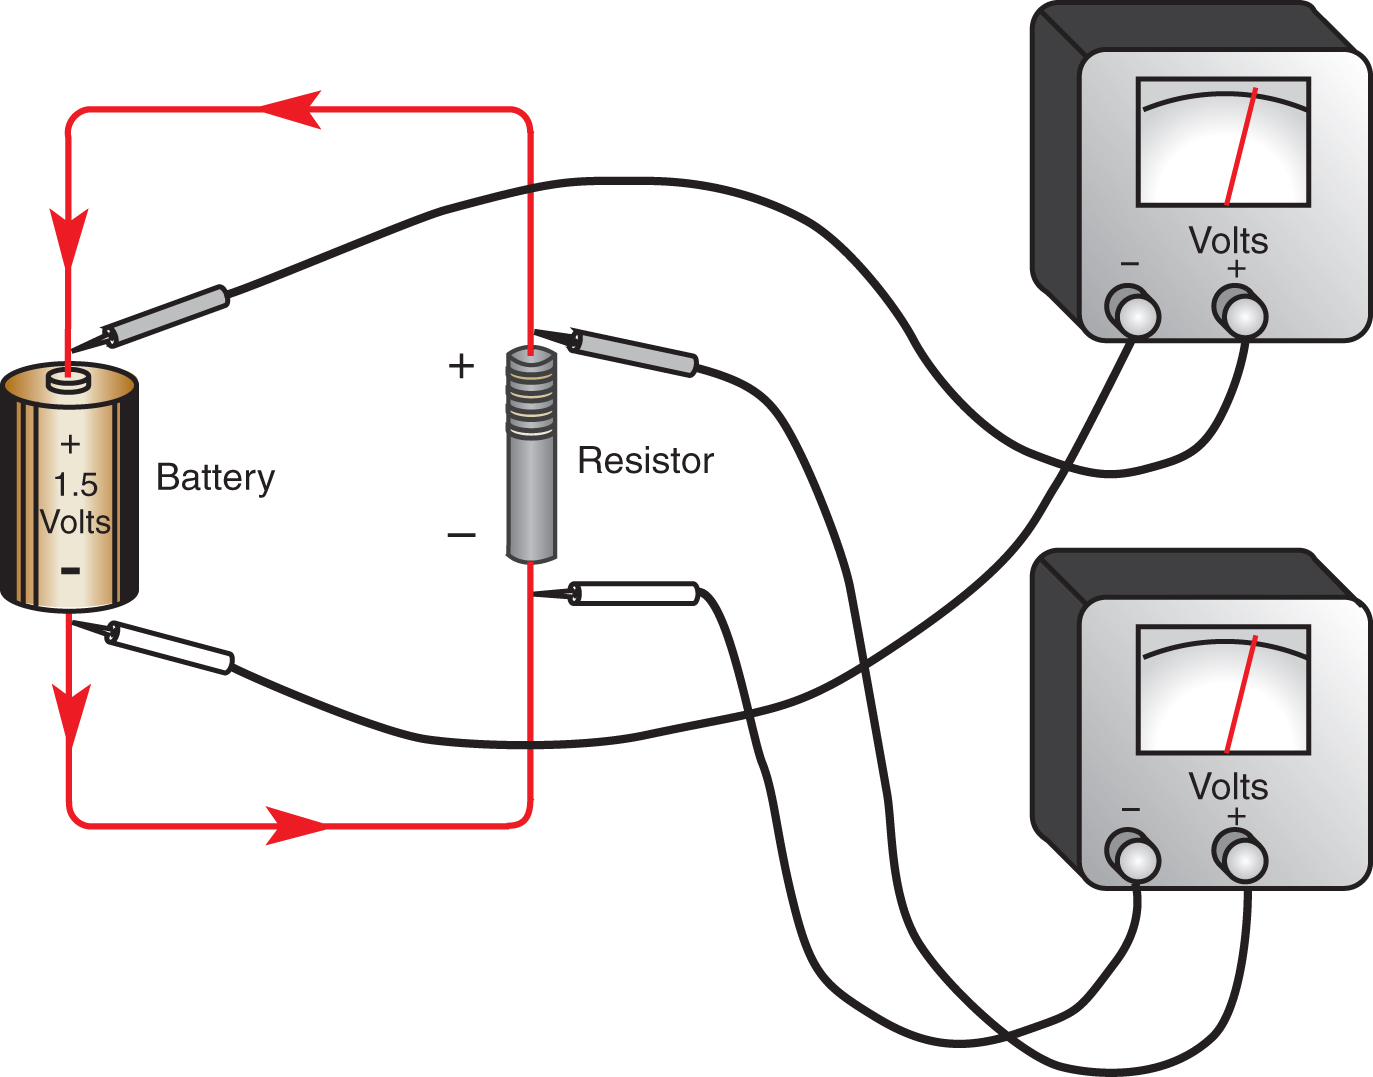 A battery is a source of electrical pressure that is also called an EMF, electromotive force, potential, or potential difference. All are measured in volts, and all mean essentially the same thing.